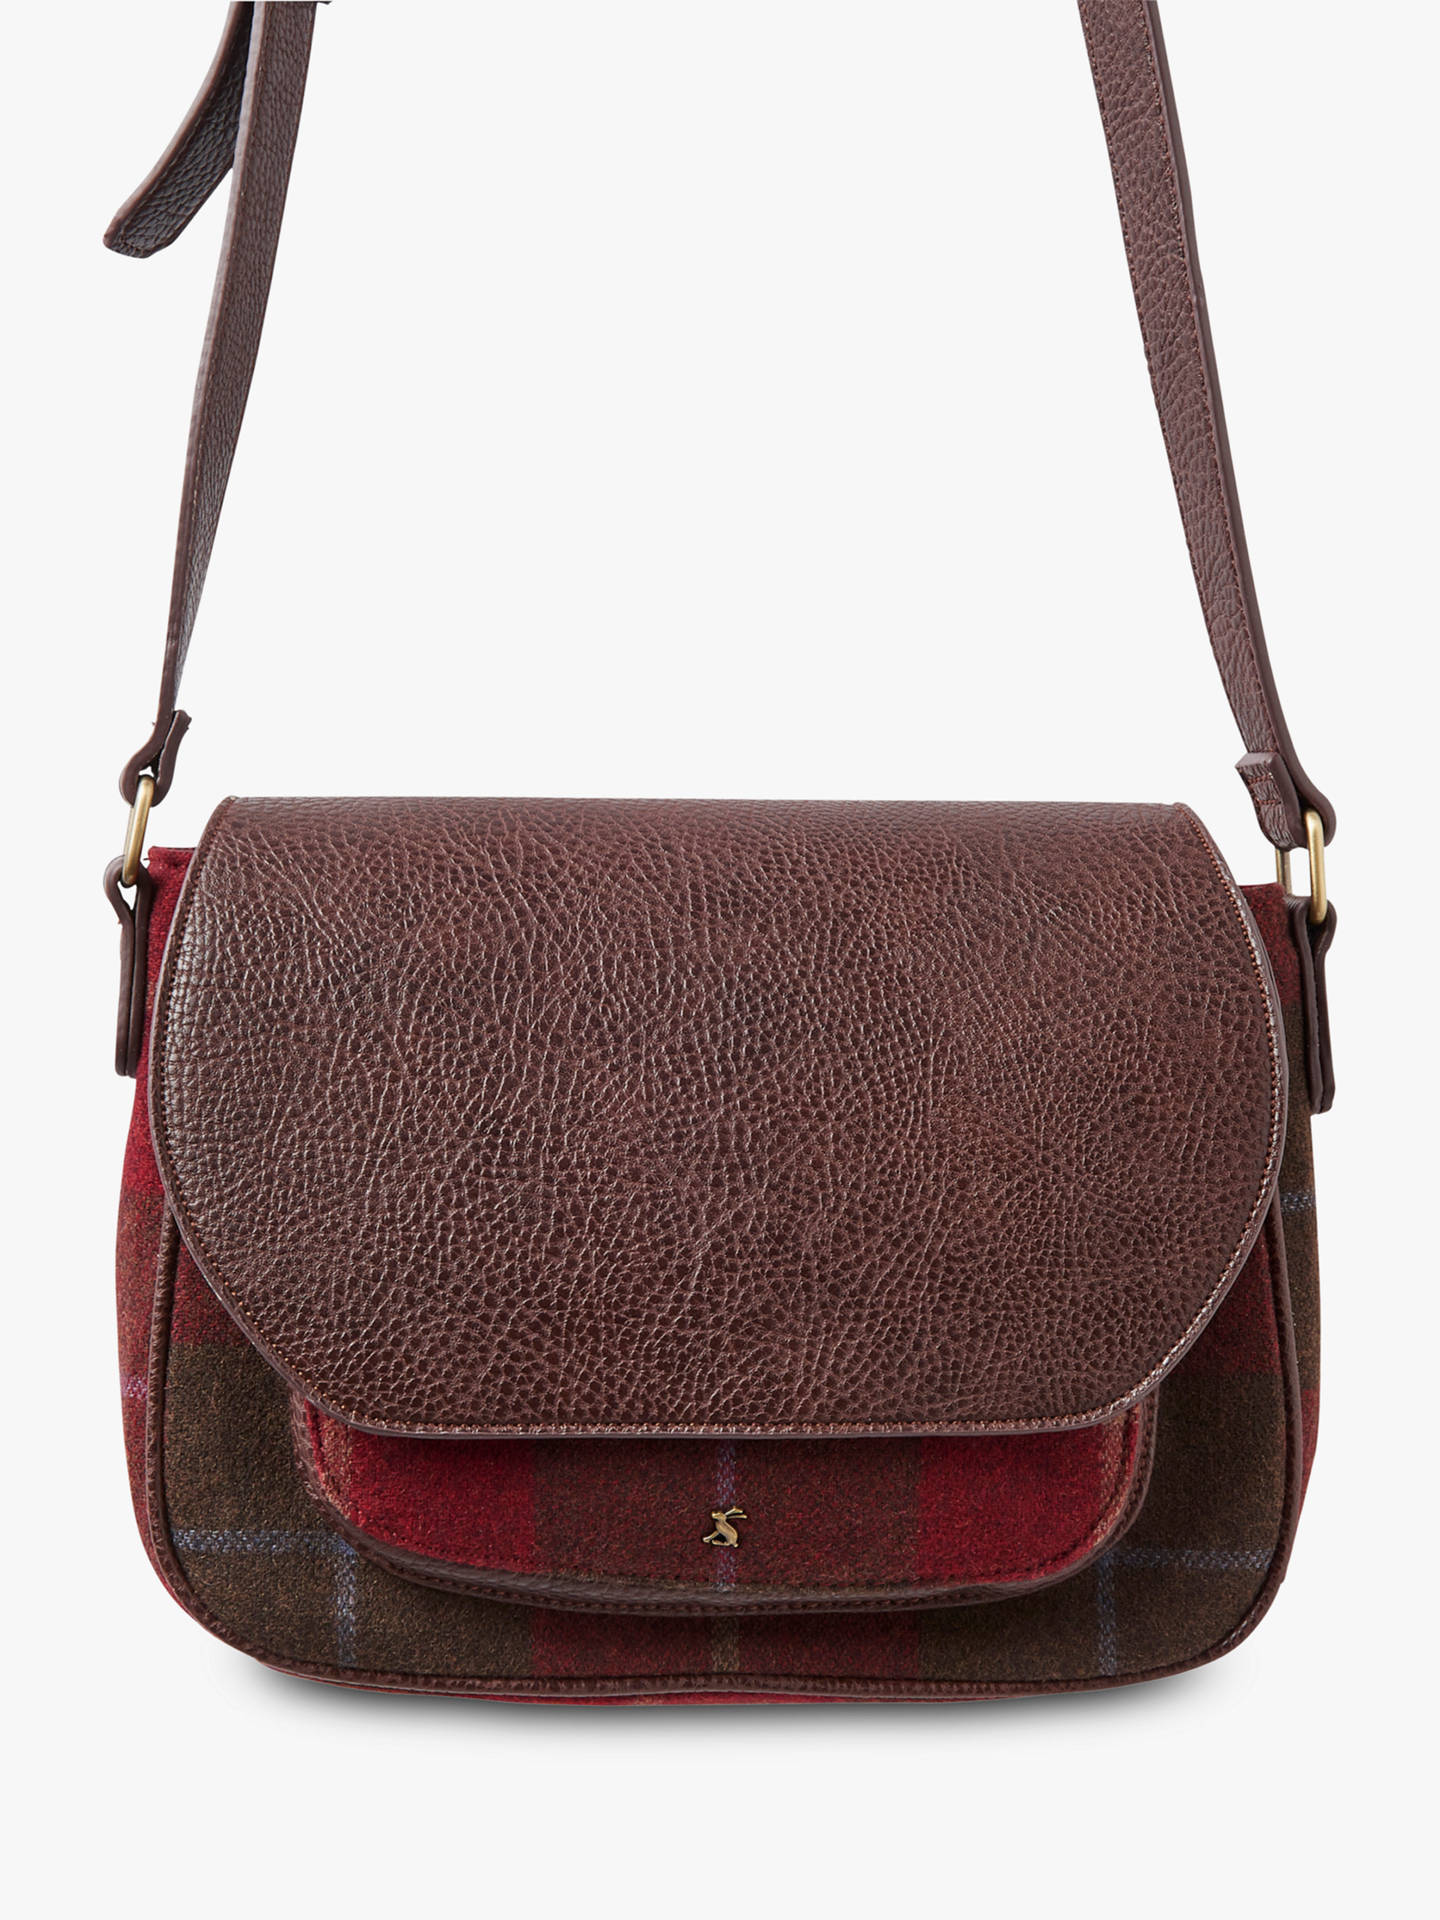 ea3ef030fcf BuyJoules Darby Tweed Saddle Bag, Red Check Online at johnlewis.com ...